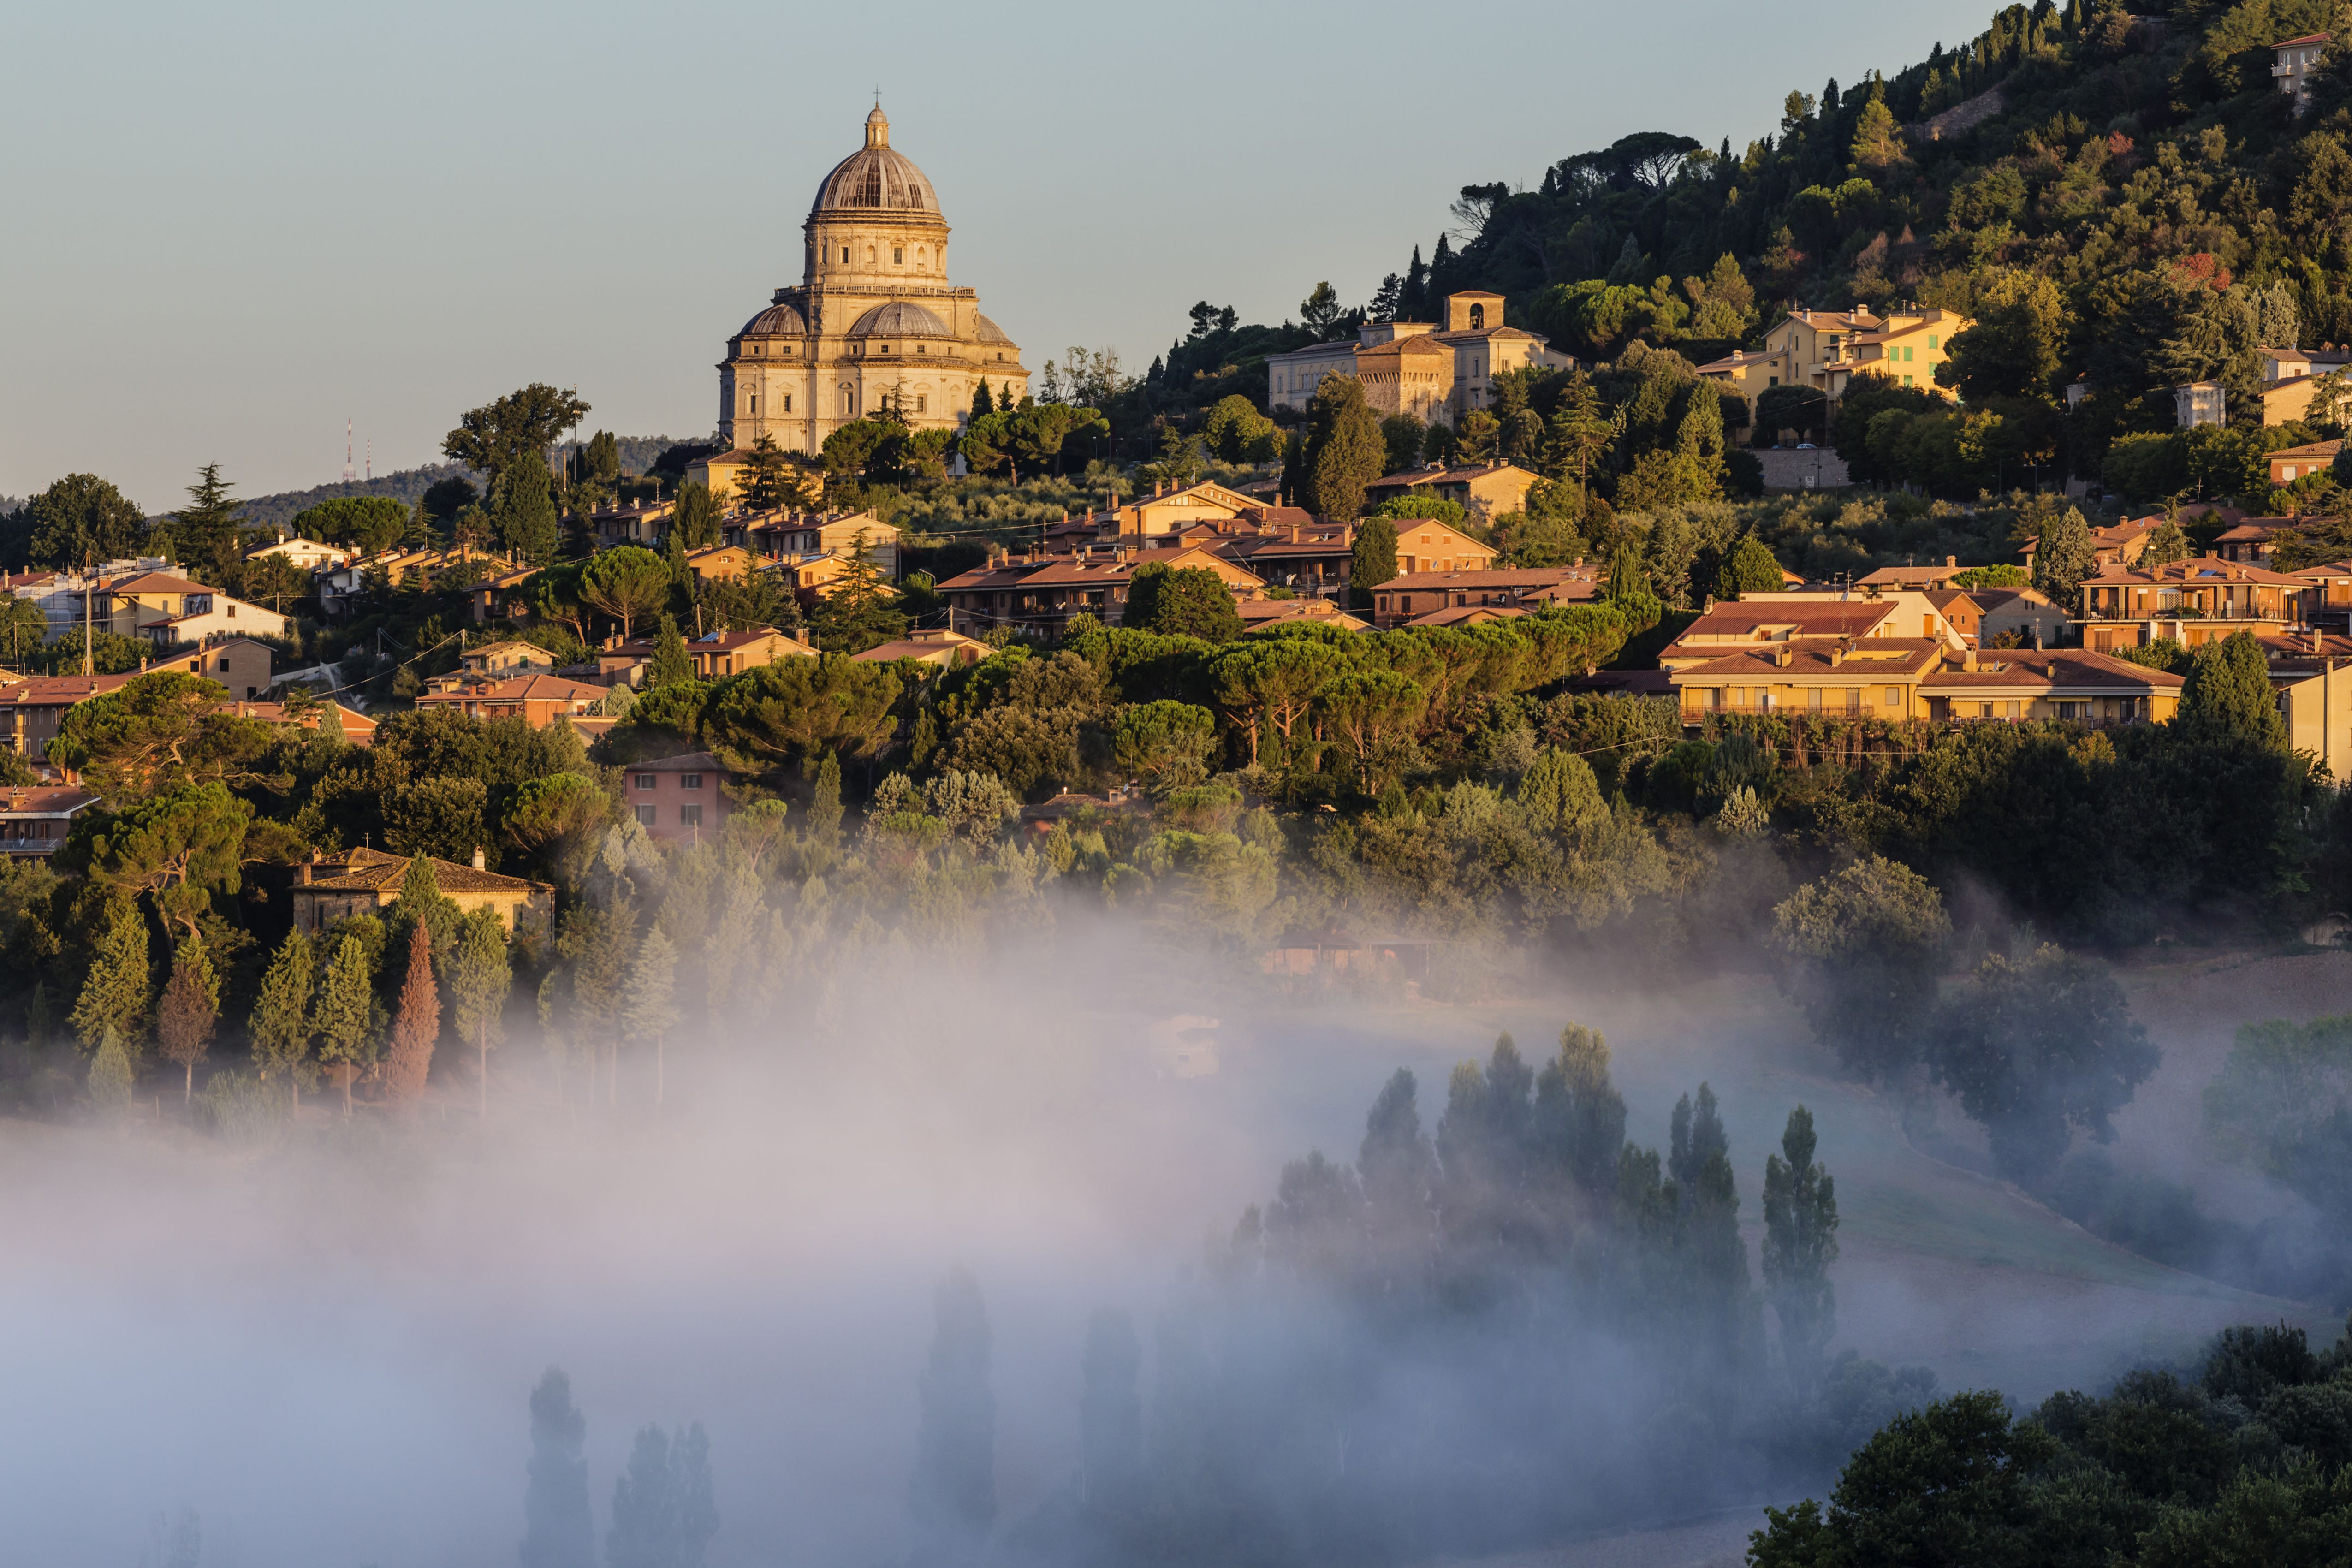 Morning fog and hill town, Todi, Umbria, Italy